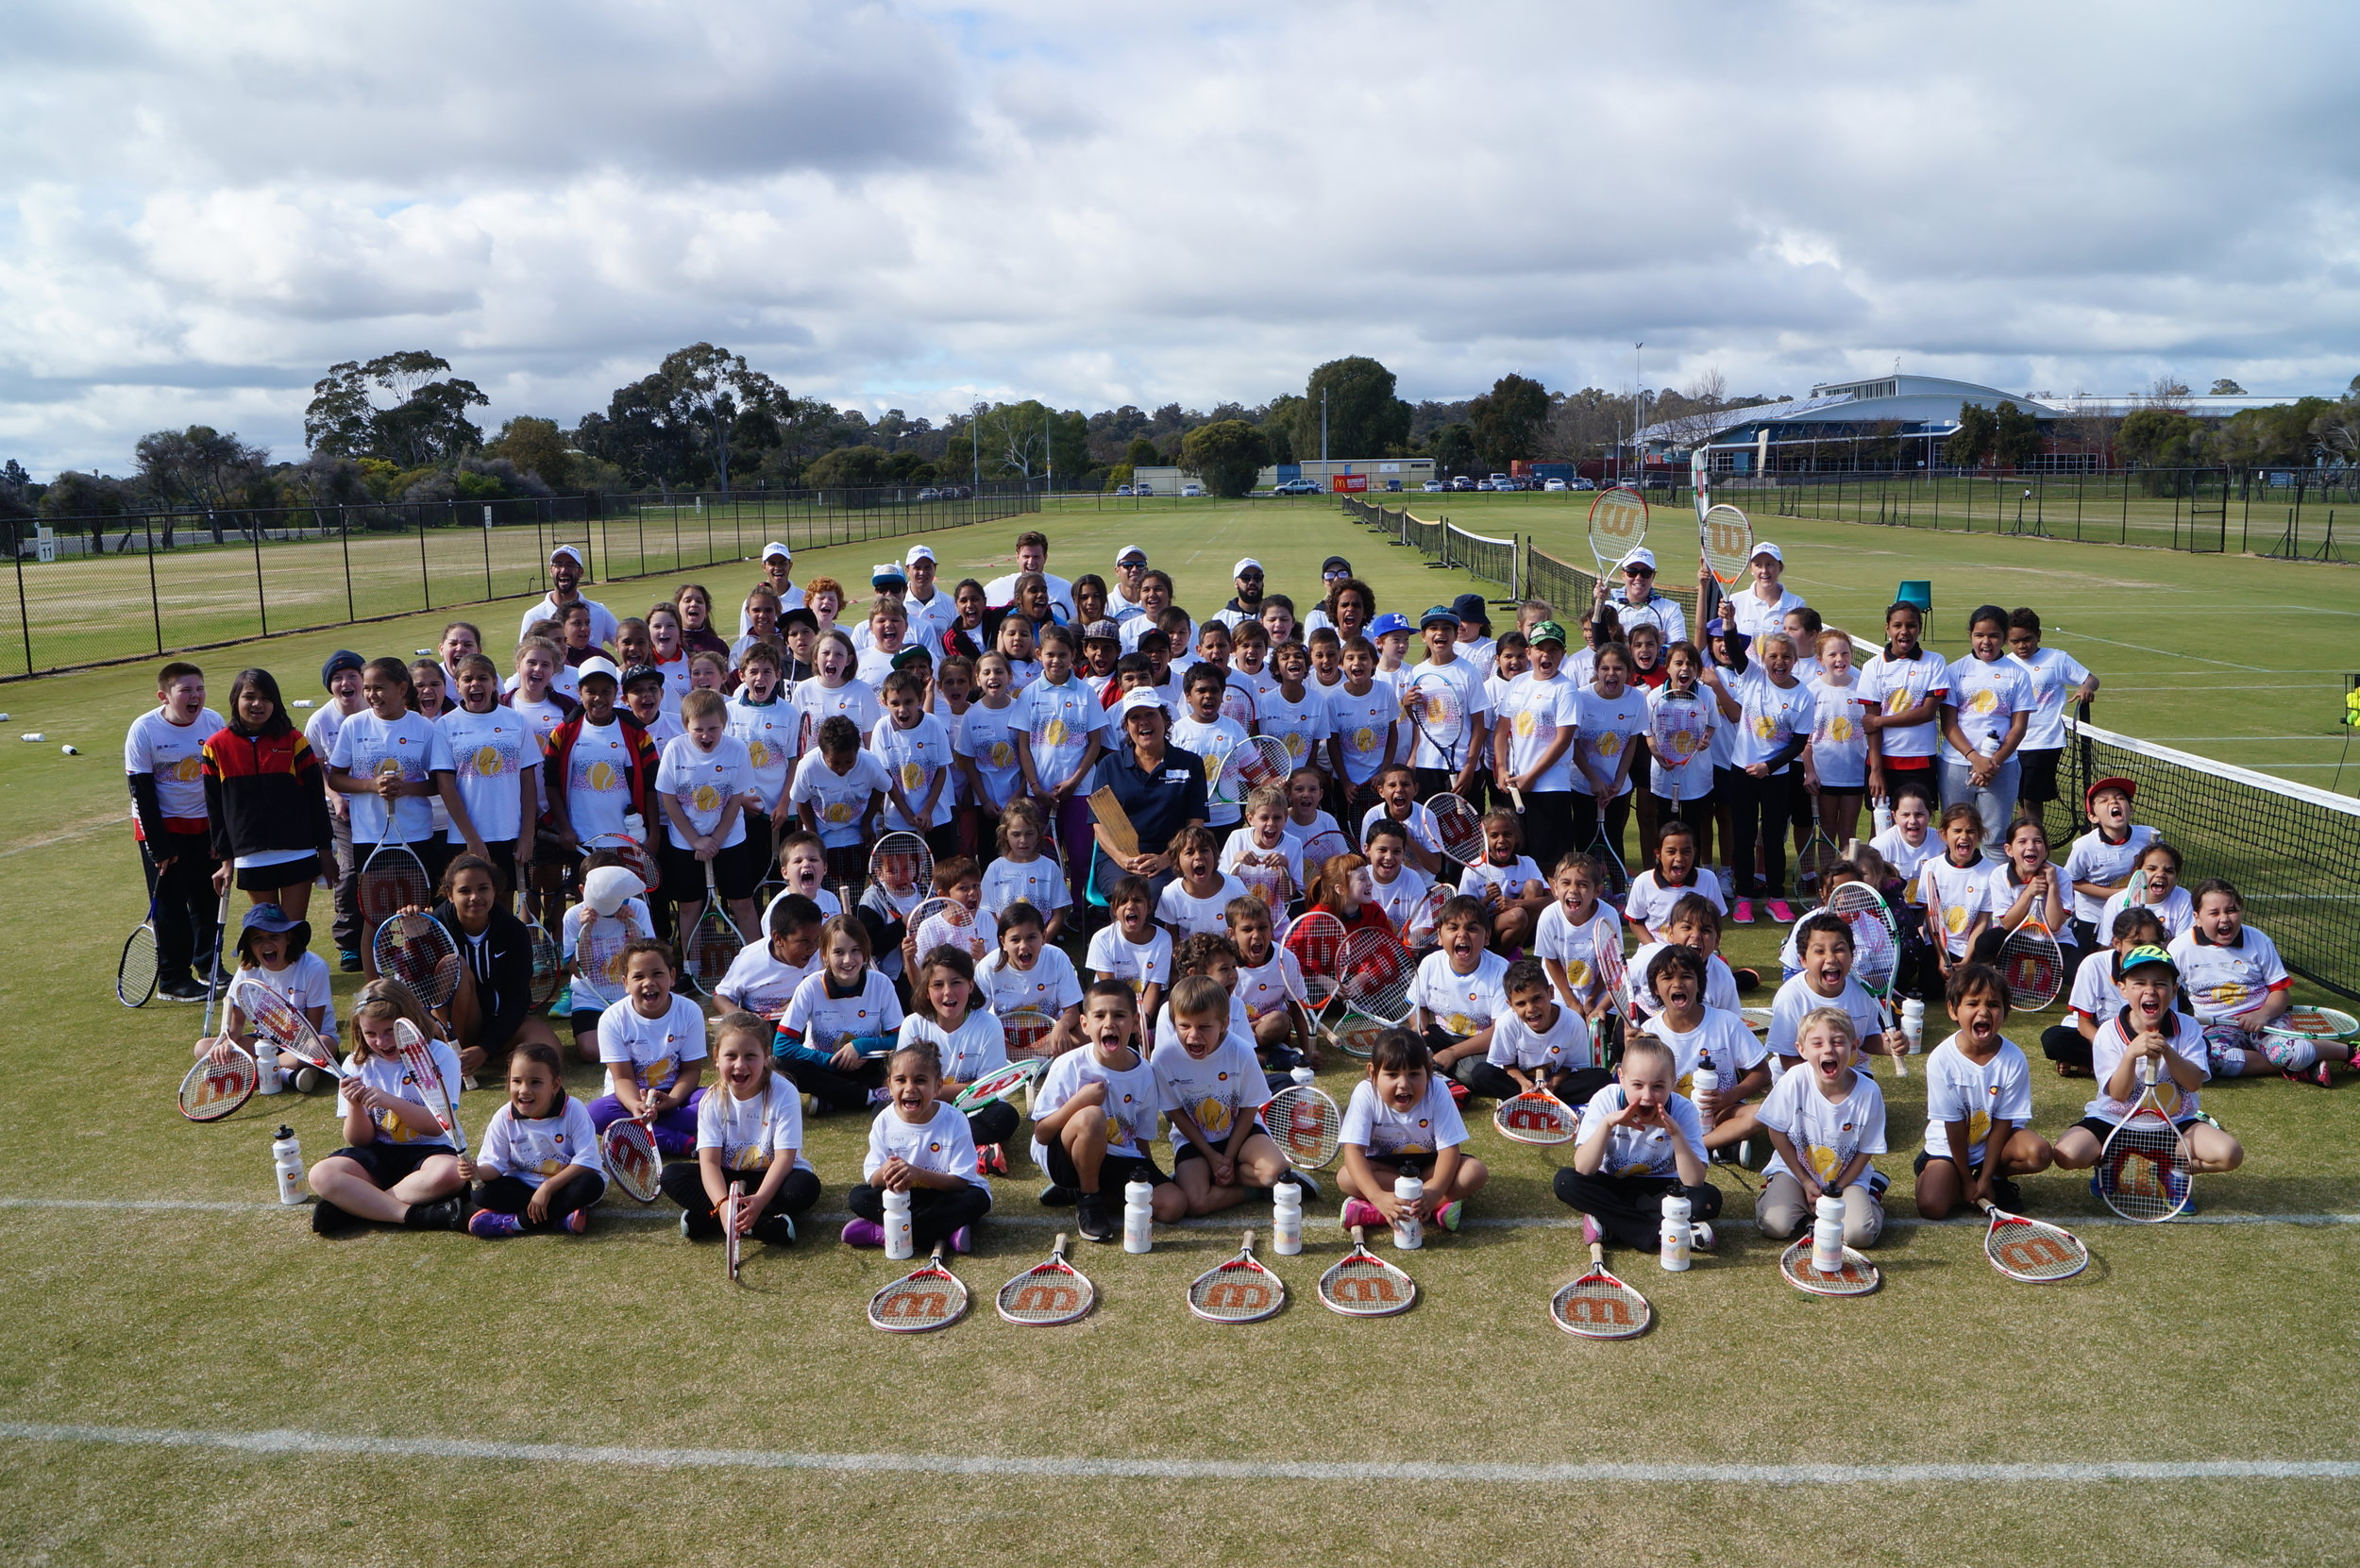 118 youngsters participate in Bunbury - a great way to end the 2016 Come and Try Days!